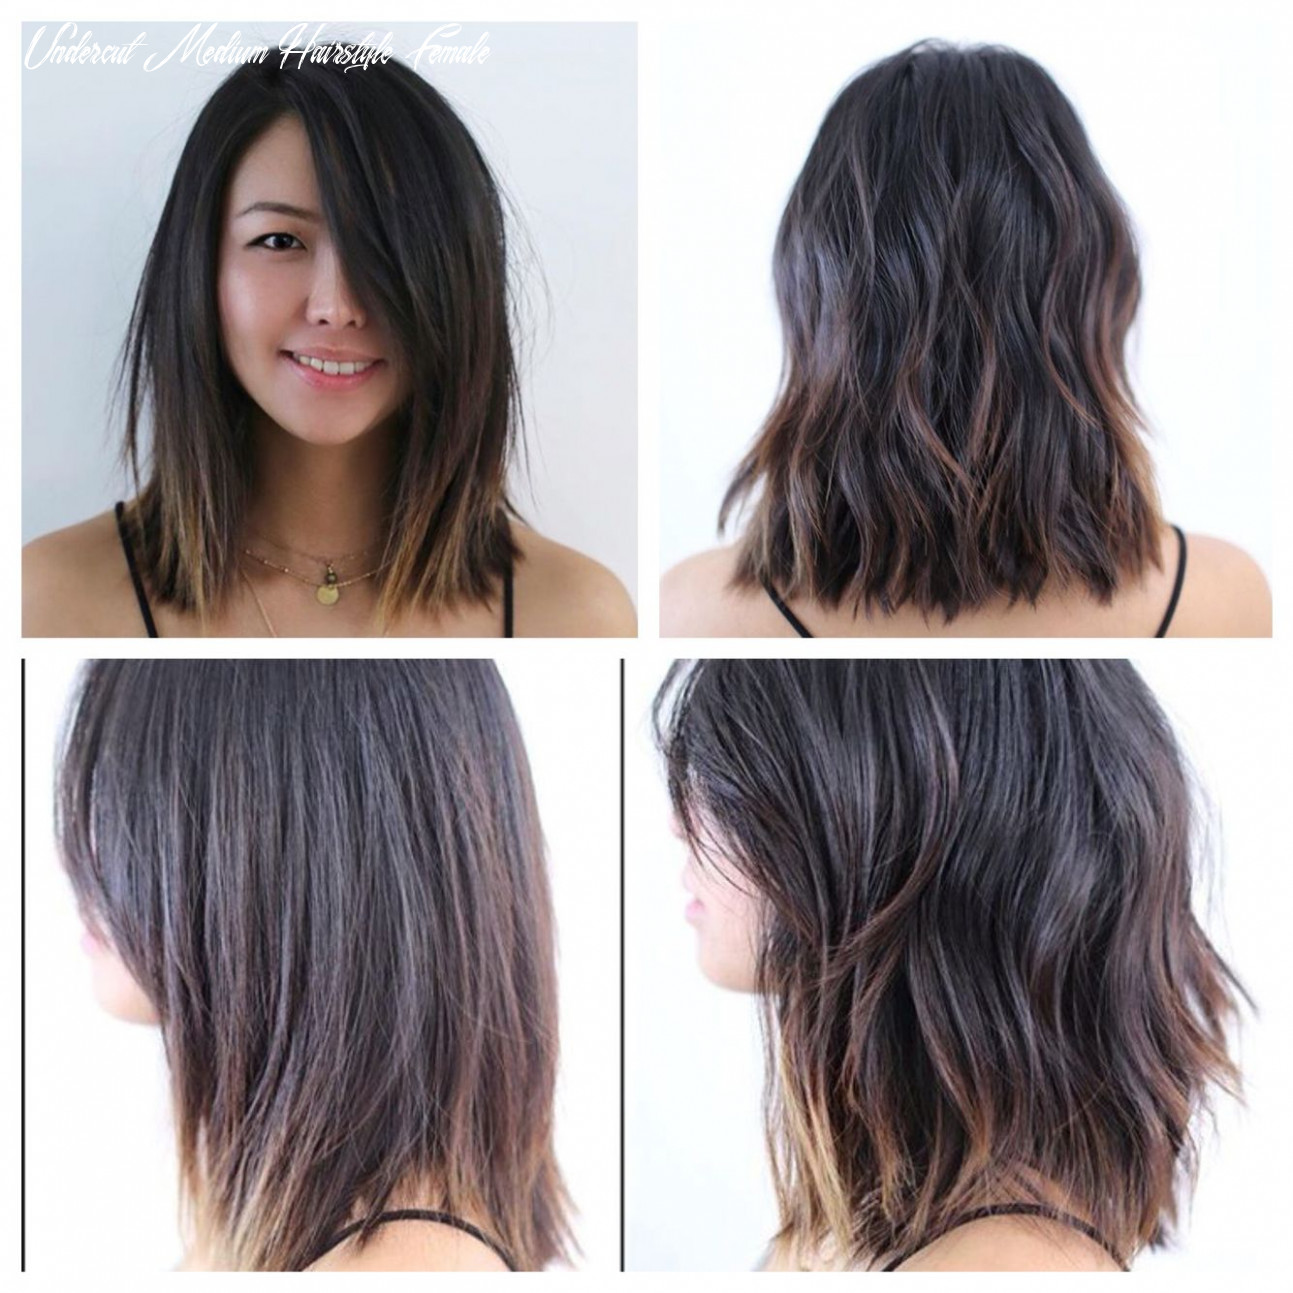 Mid length hair. Blunt. Soft undercut. Soft waves. Lived in hair ...